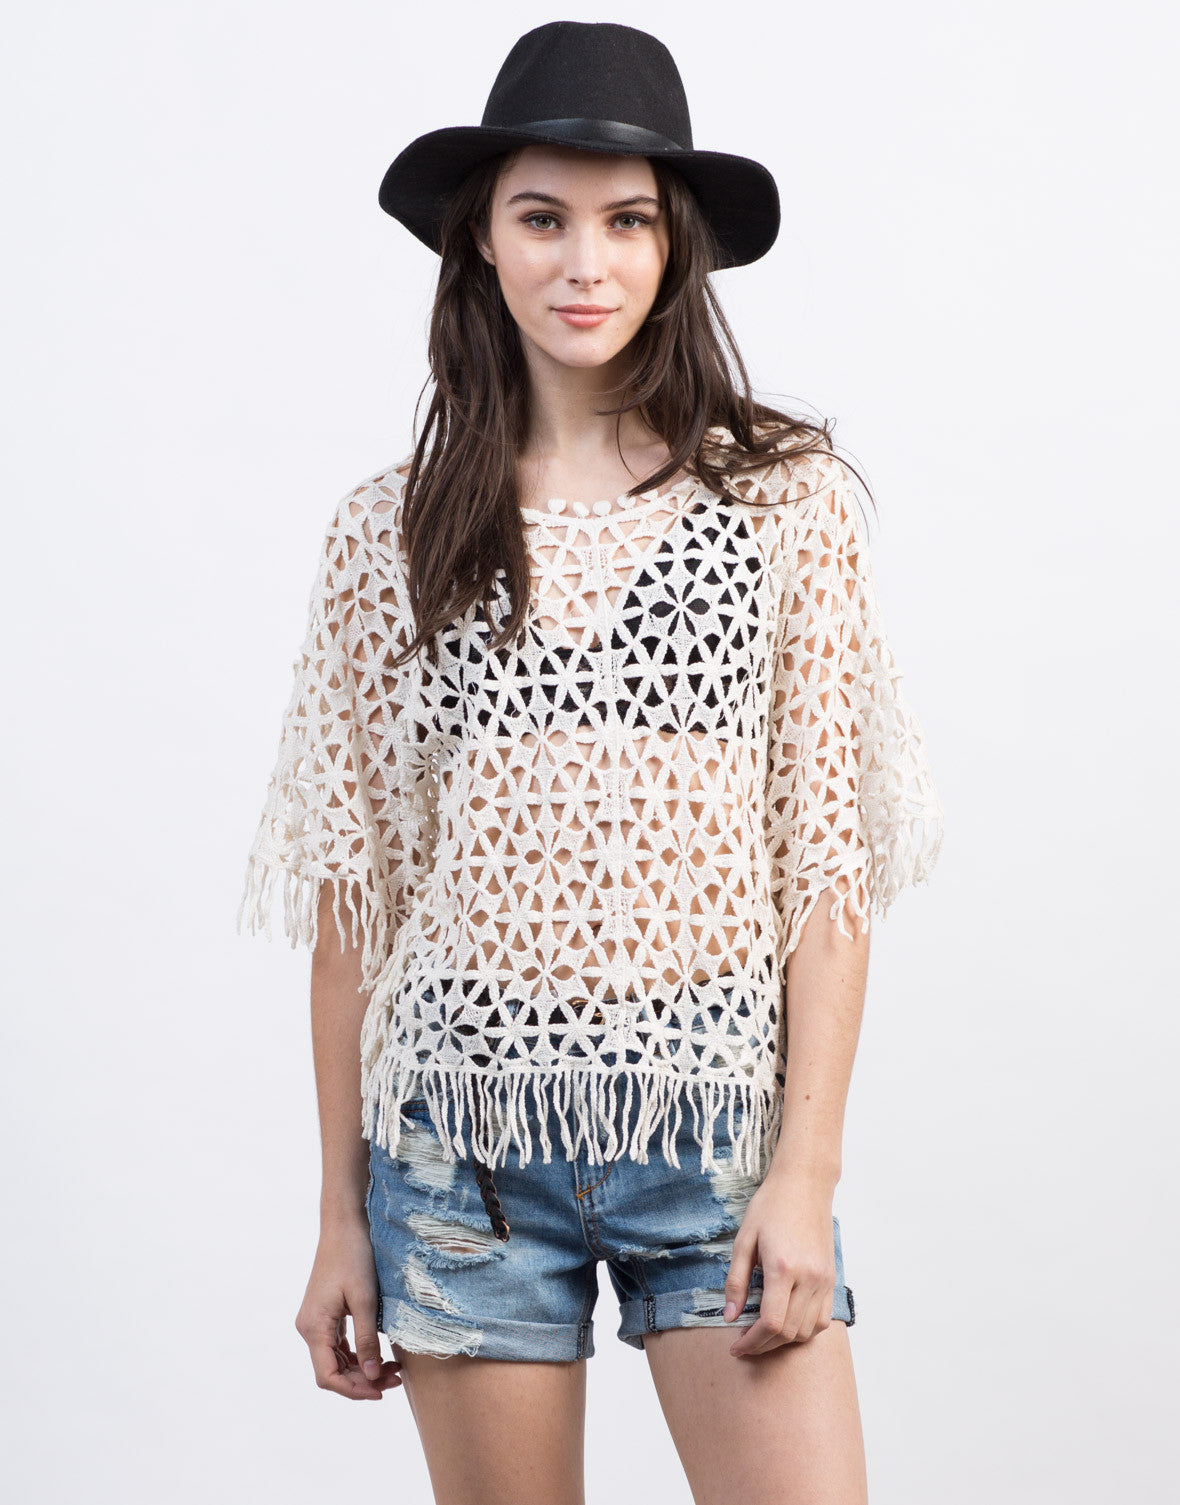 Crochet Fringe Top Fringe Blouse Floral Crochet Top 2020ave